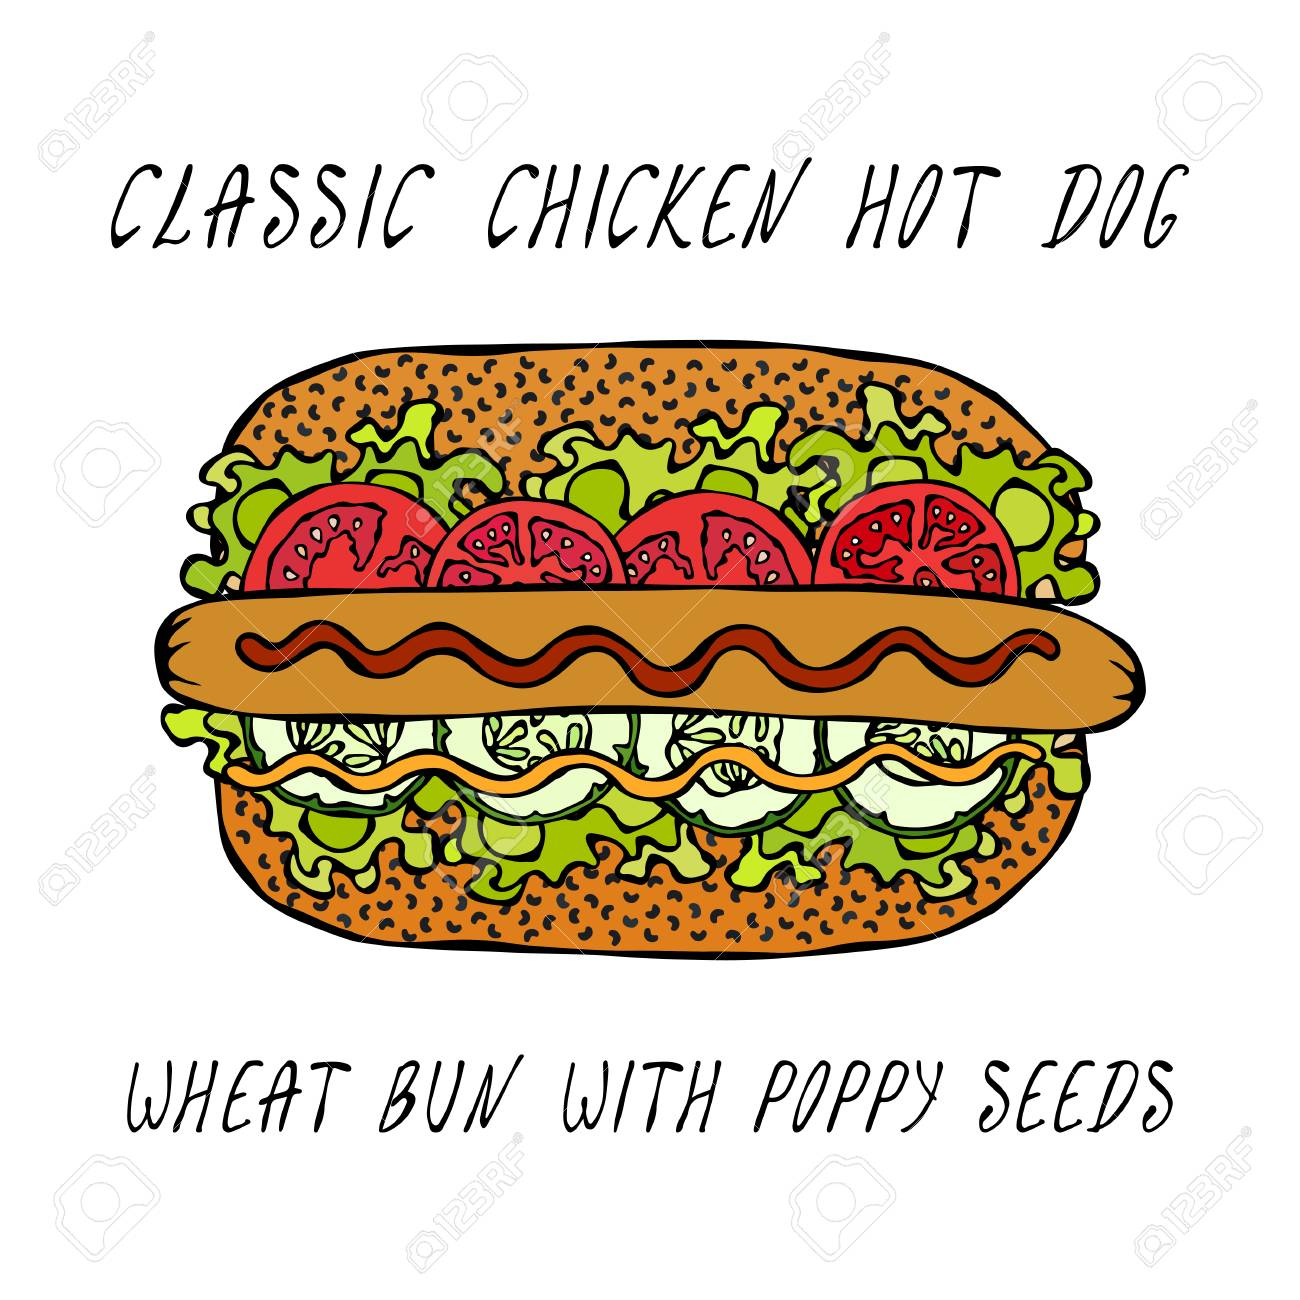 Classic Chicken Hot Dog on a Sesame Bun with Lettuce Salad, Tomato, Cucumber, Mustard, Ketchup. Street Fast Food Collection. Realistic Hand Drawn High Quality Vector Illustration. Doodle Style - 114966642